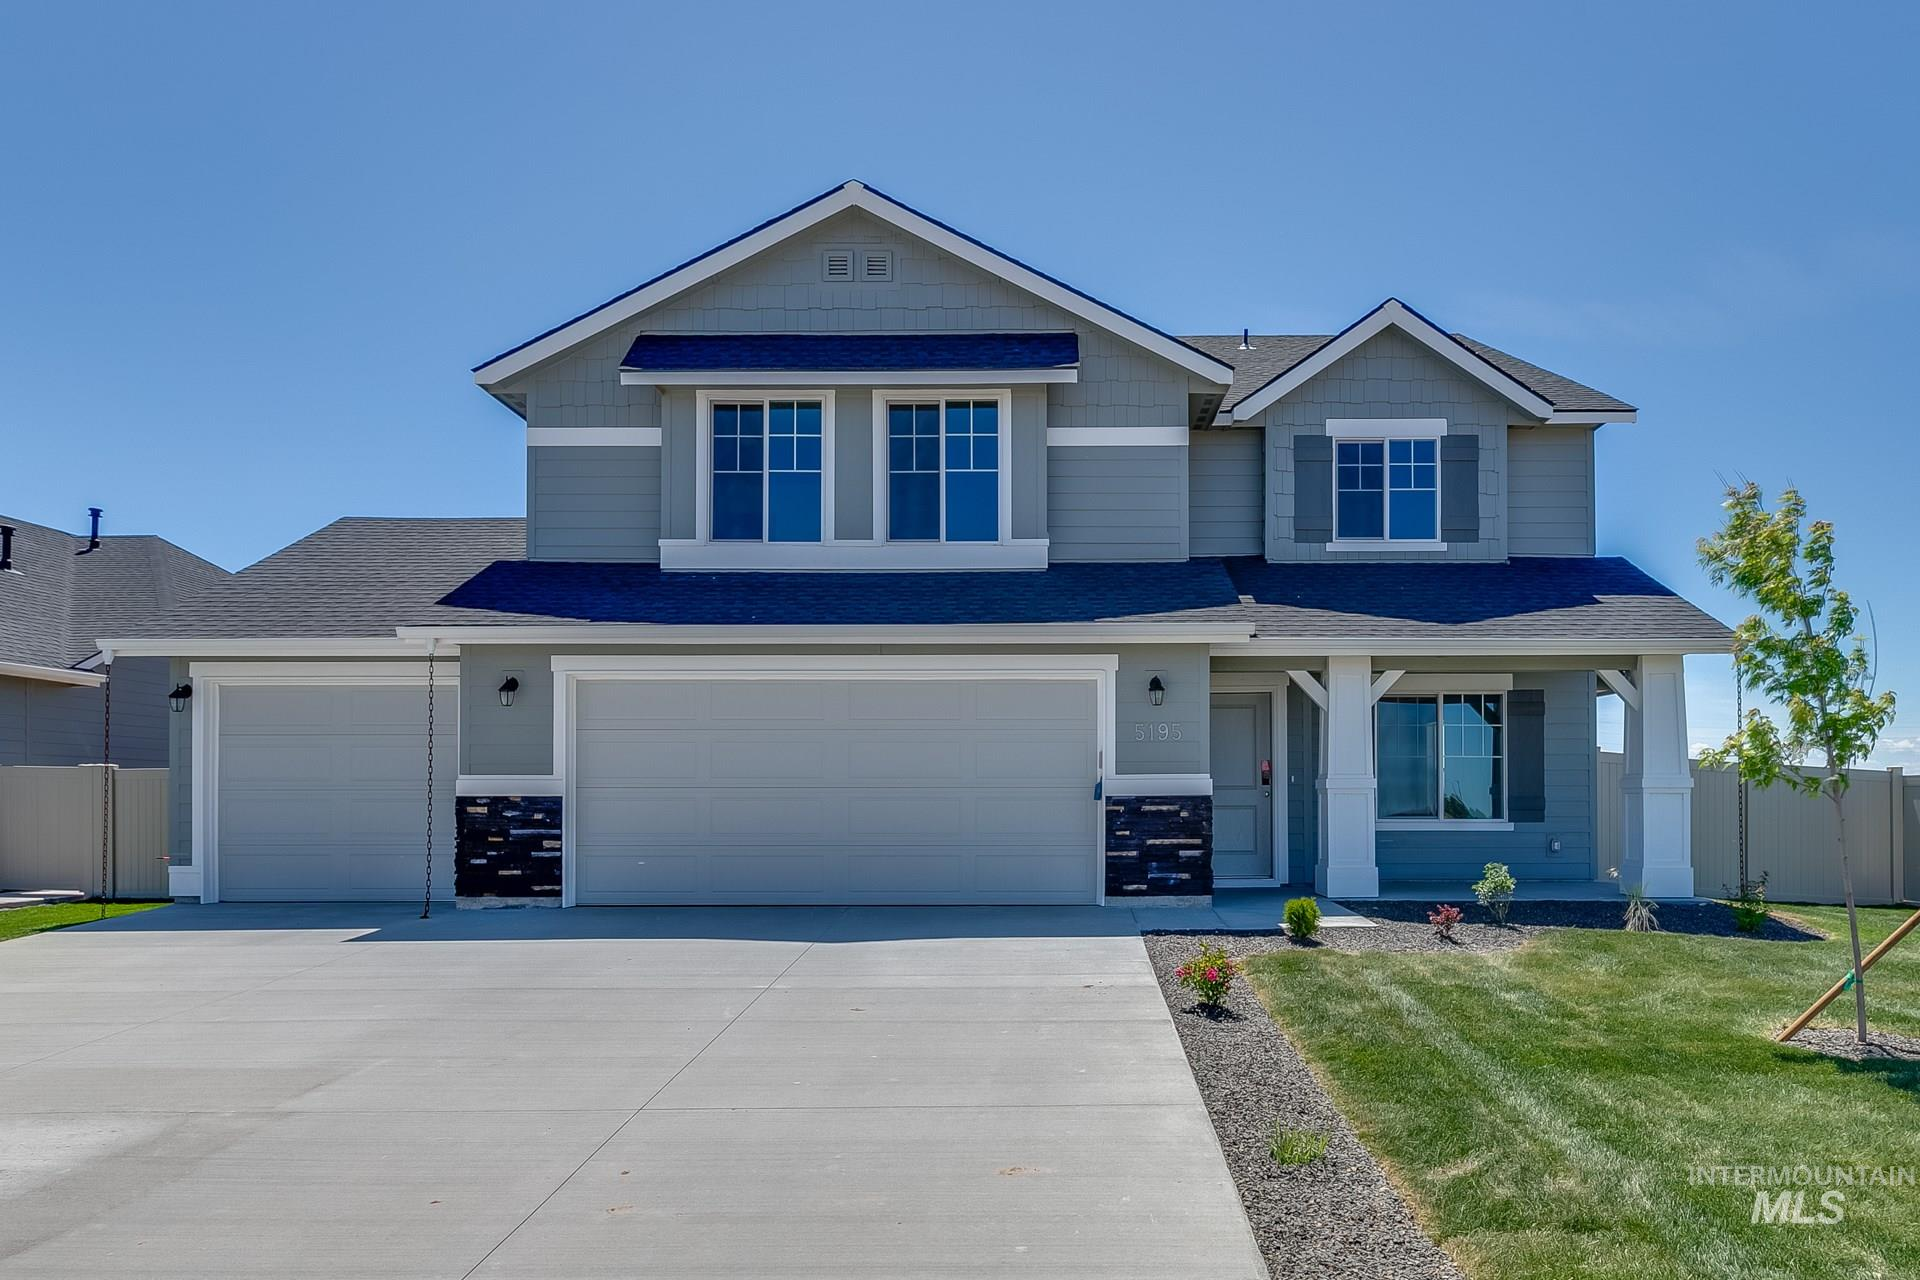 4935 W Sands Basin Dr Property Photo - Meridian, ID real estate listing